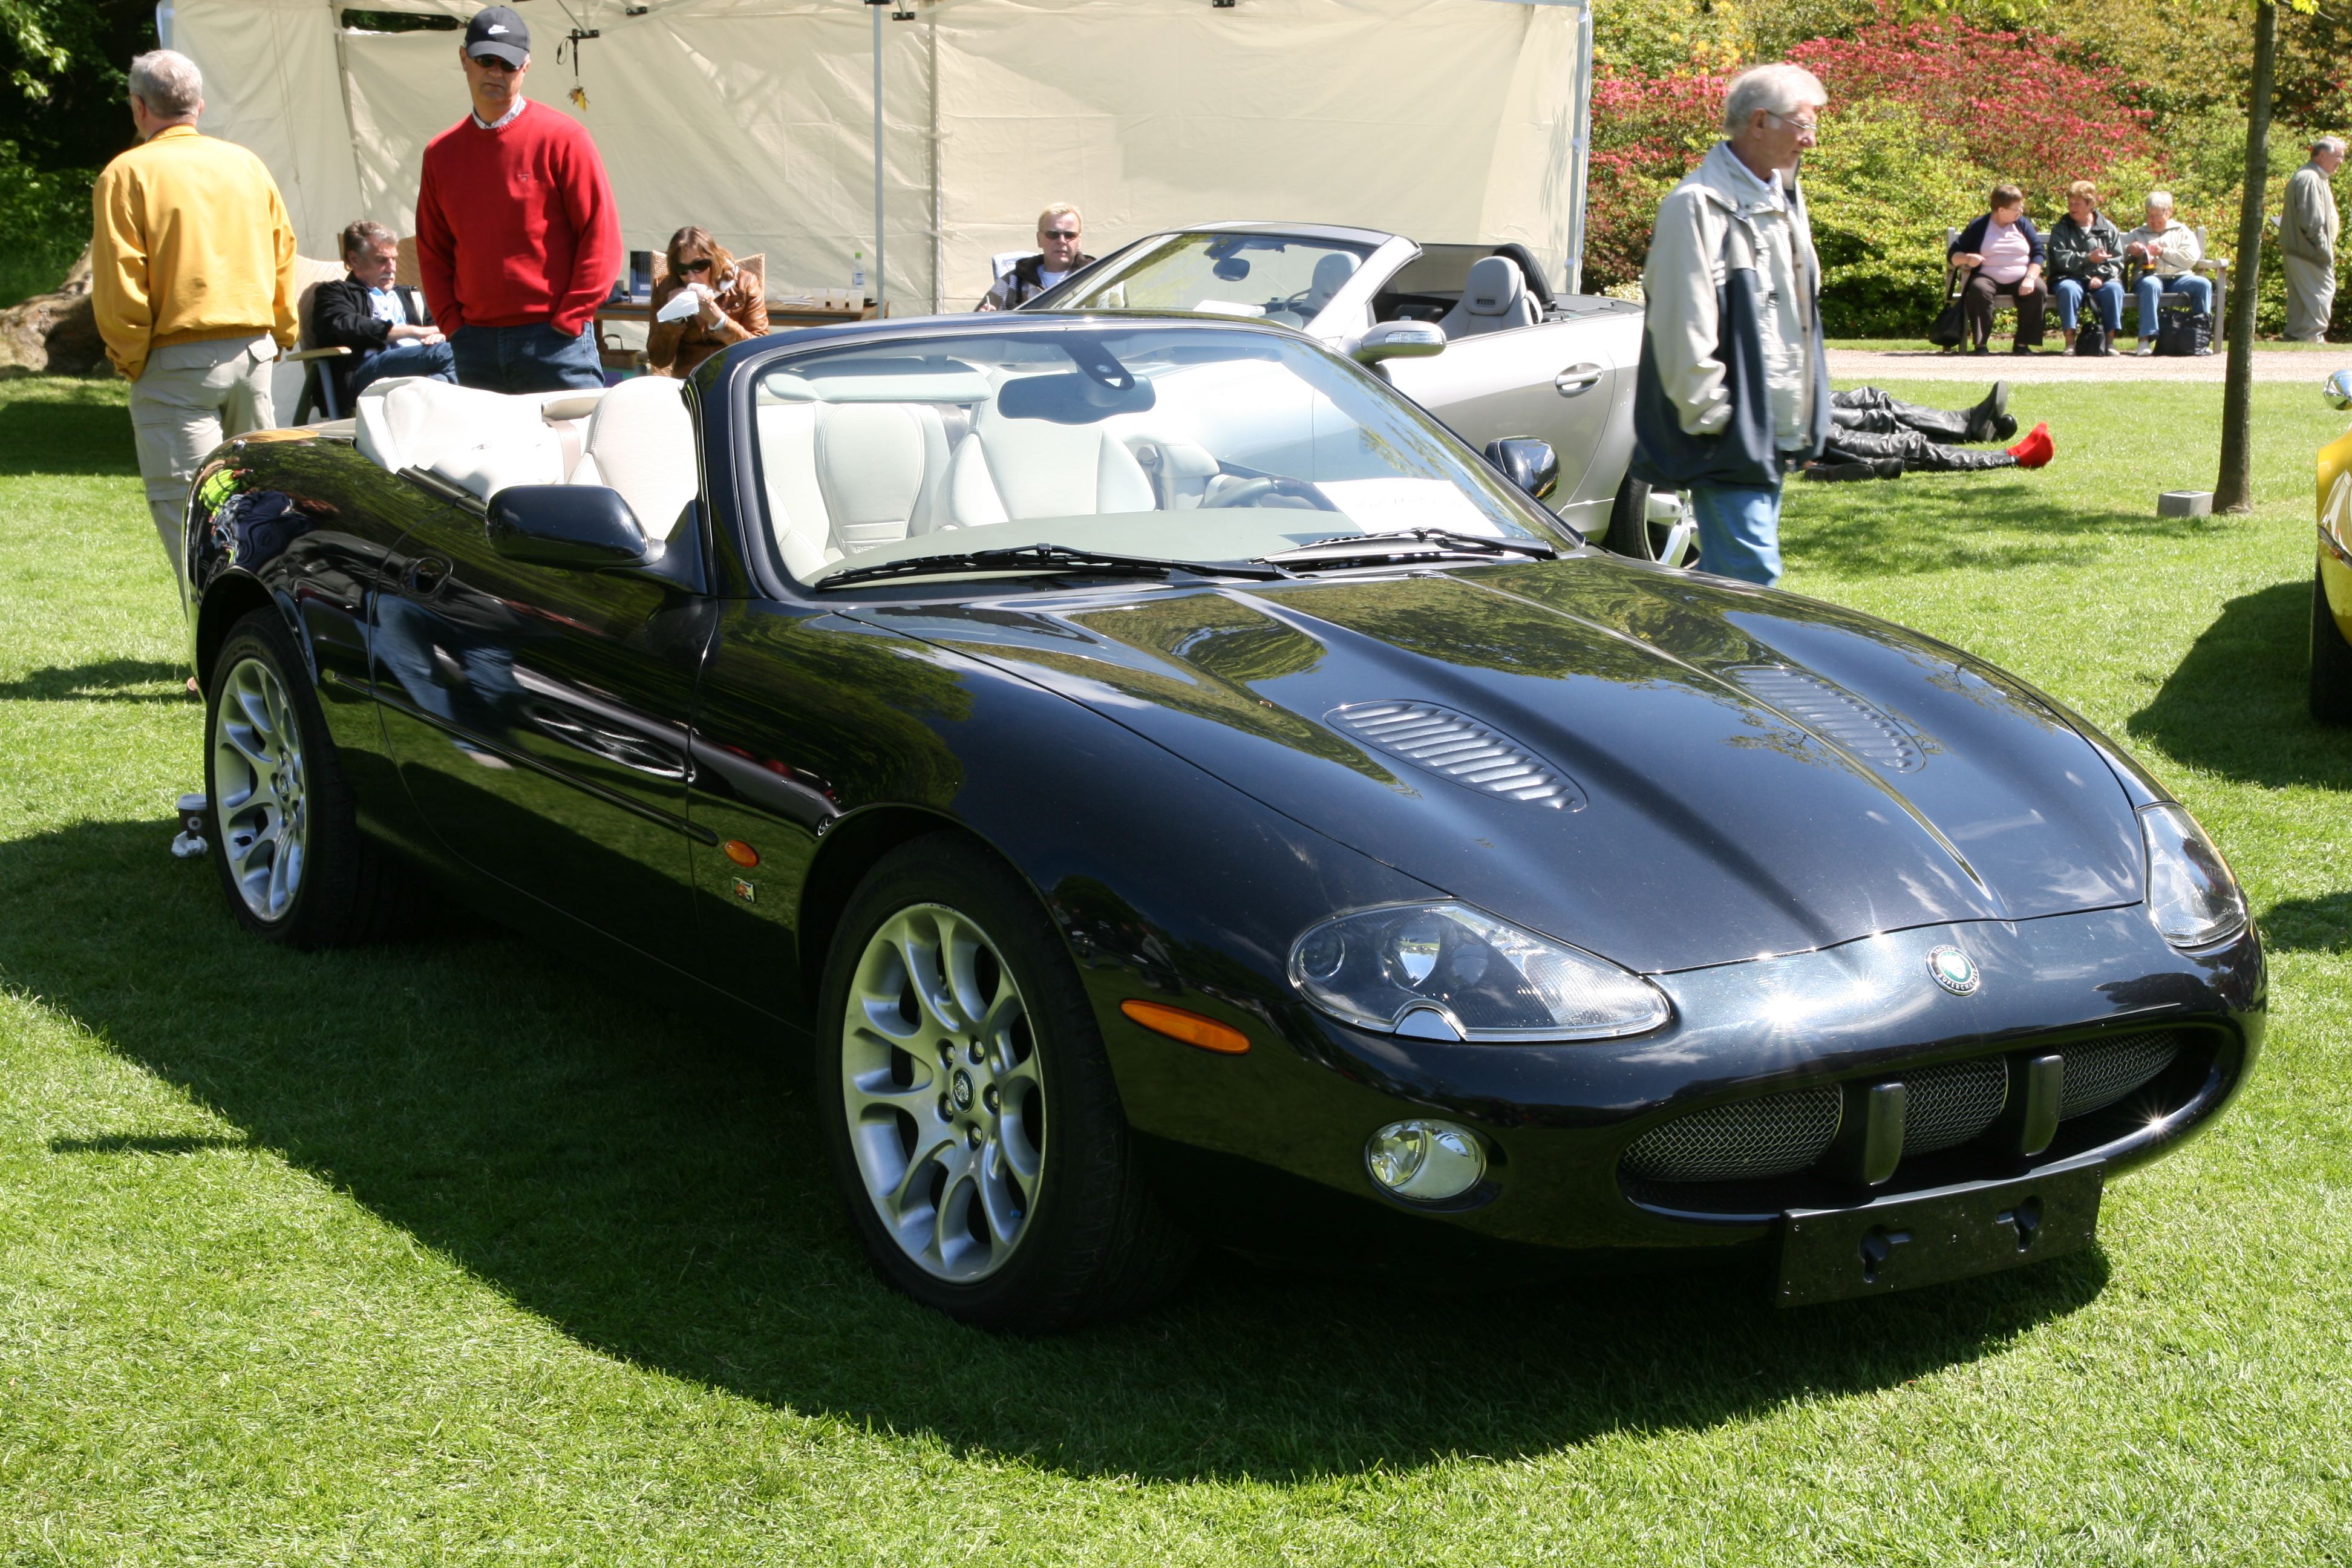 File:Jaguar XKR Convertible Front Right